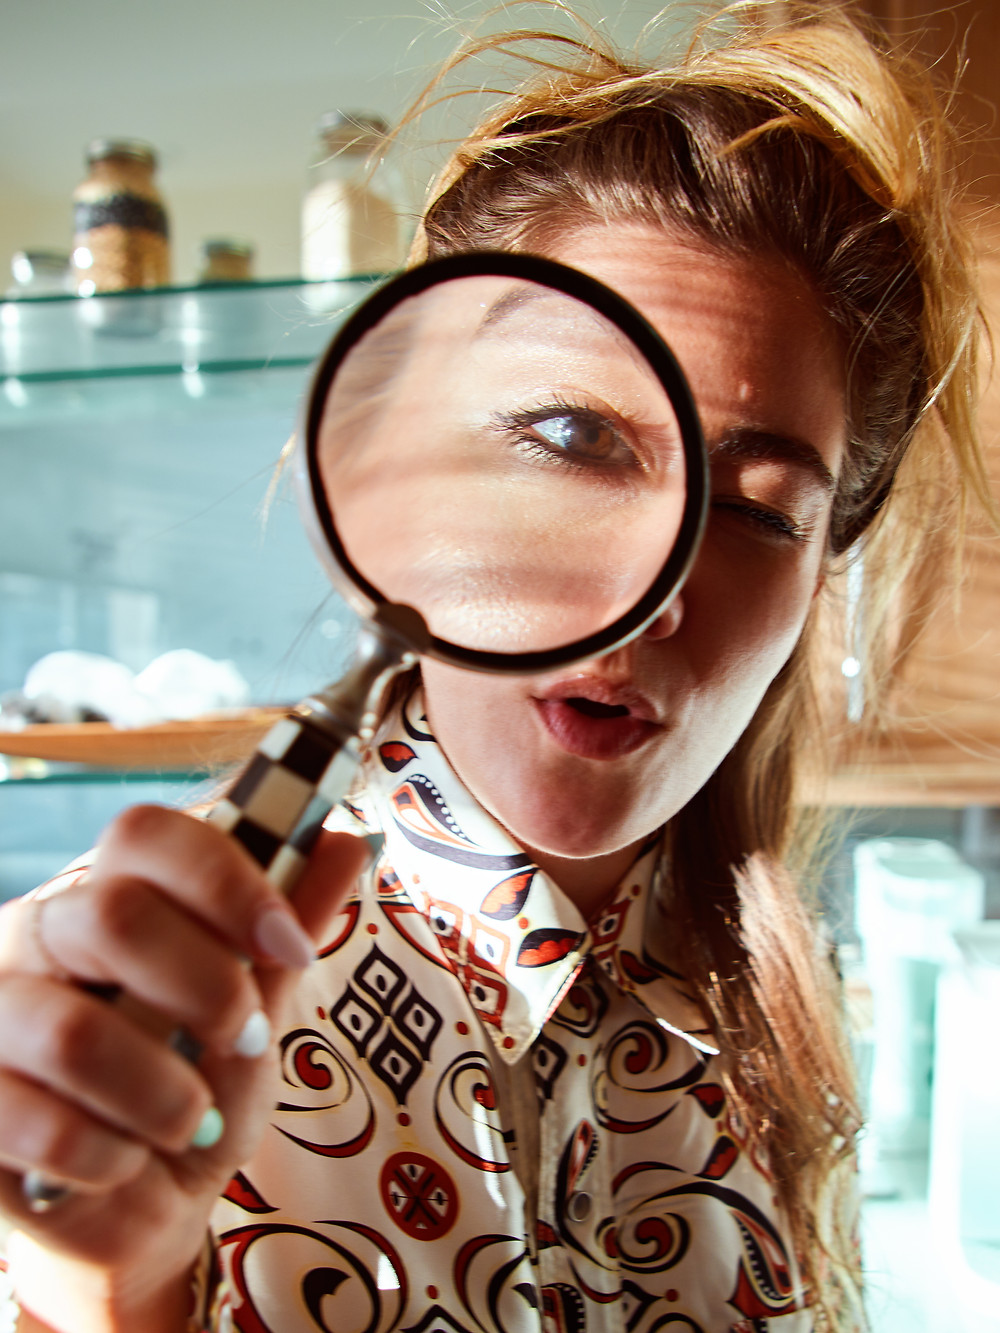 Tori Deal of SuiHeart Club looks through a magnifying glass.  Photography by Patrick Patton.